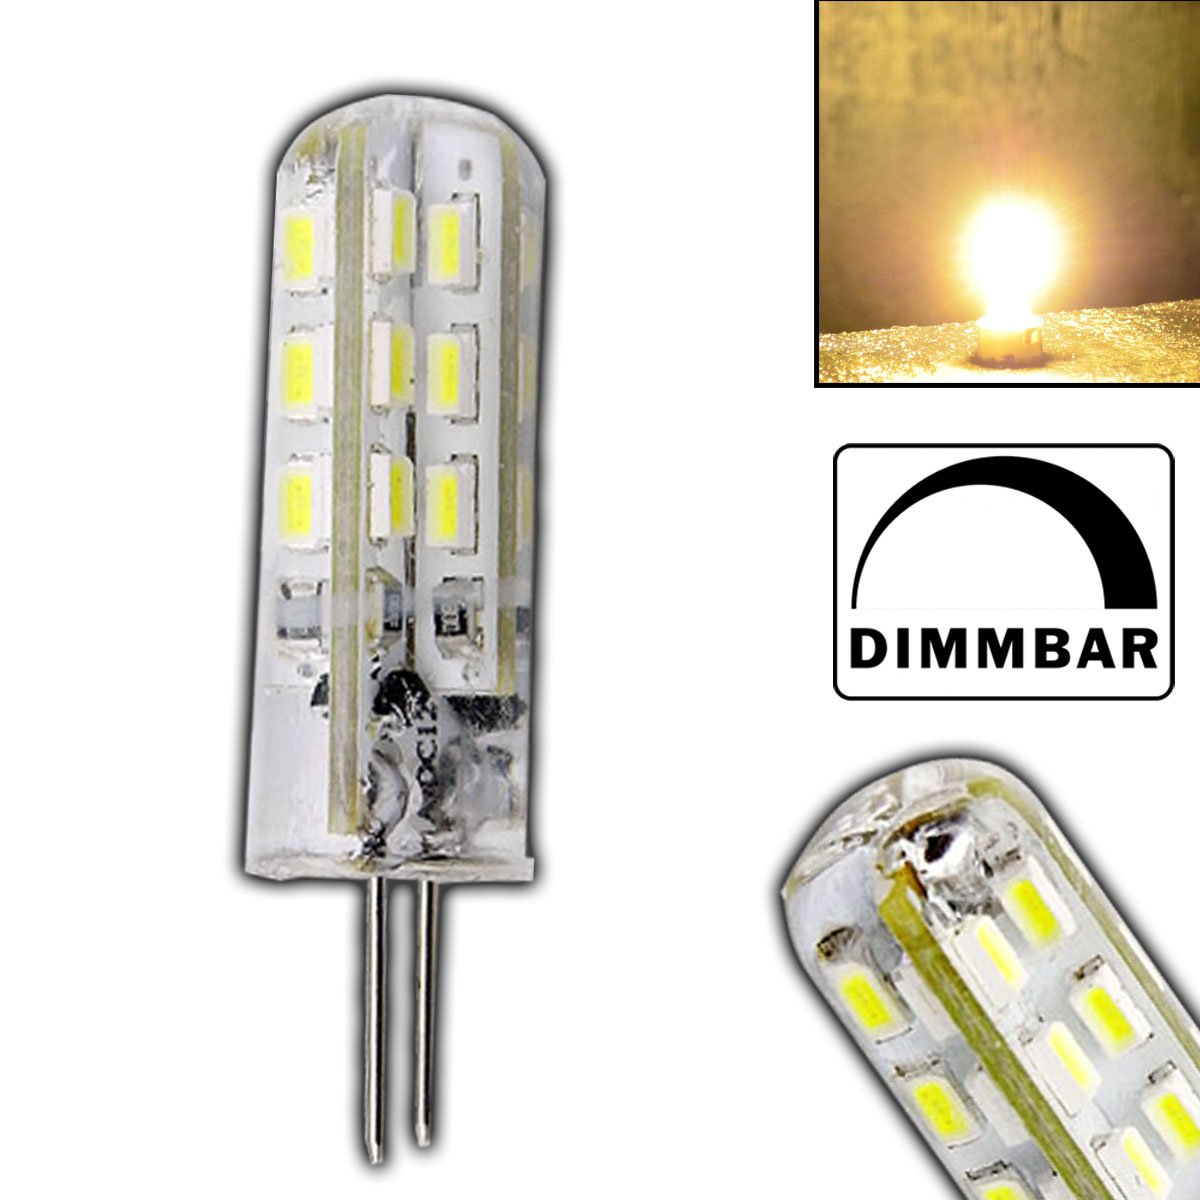 Dimmbare g4 high power led warmwei mit 15 watt dimmbar und 24 dimmbare g4 high power led warmwei mit 15 watt dimmbar und 24 smds 12v dc 125lm fr dimmer halogenfrmig stiftsockel 330 leuchtmittel g4 lampensockel parisarafo Choice Image